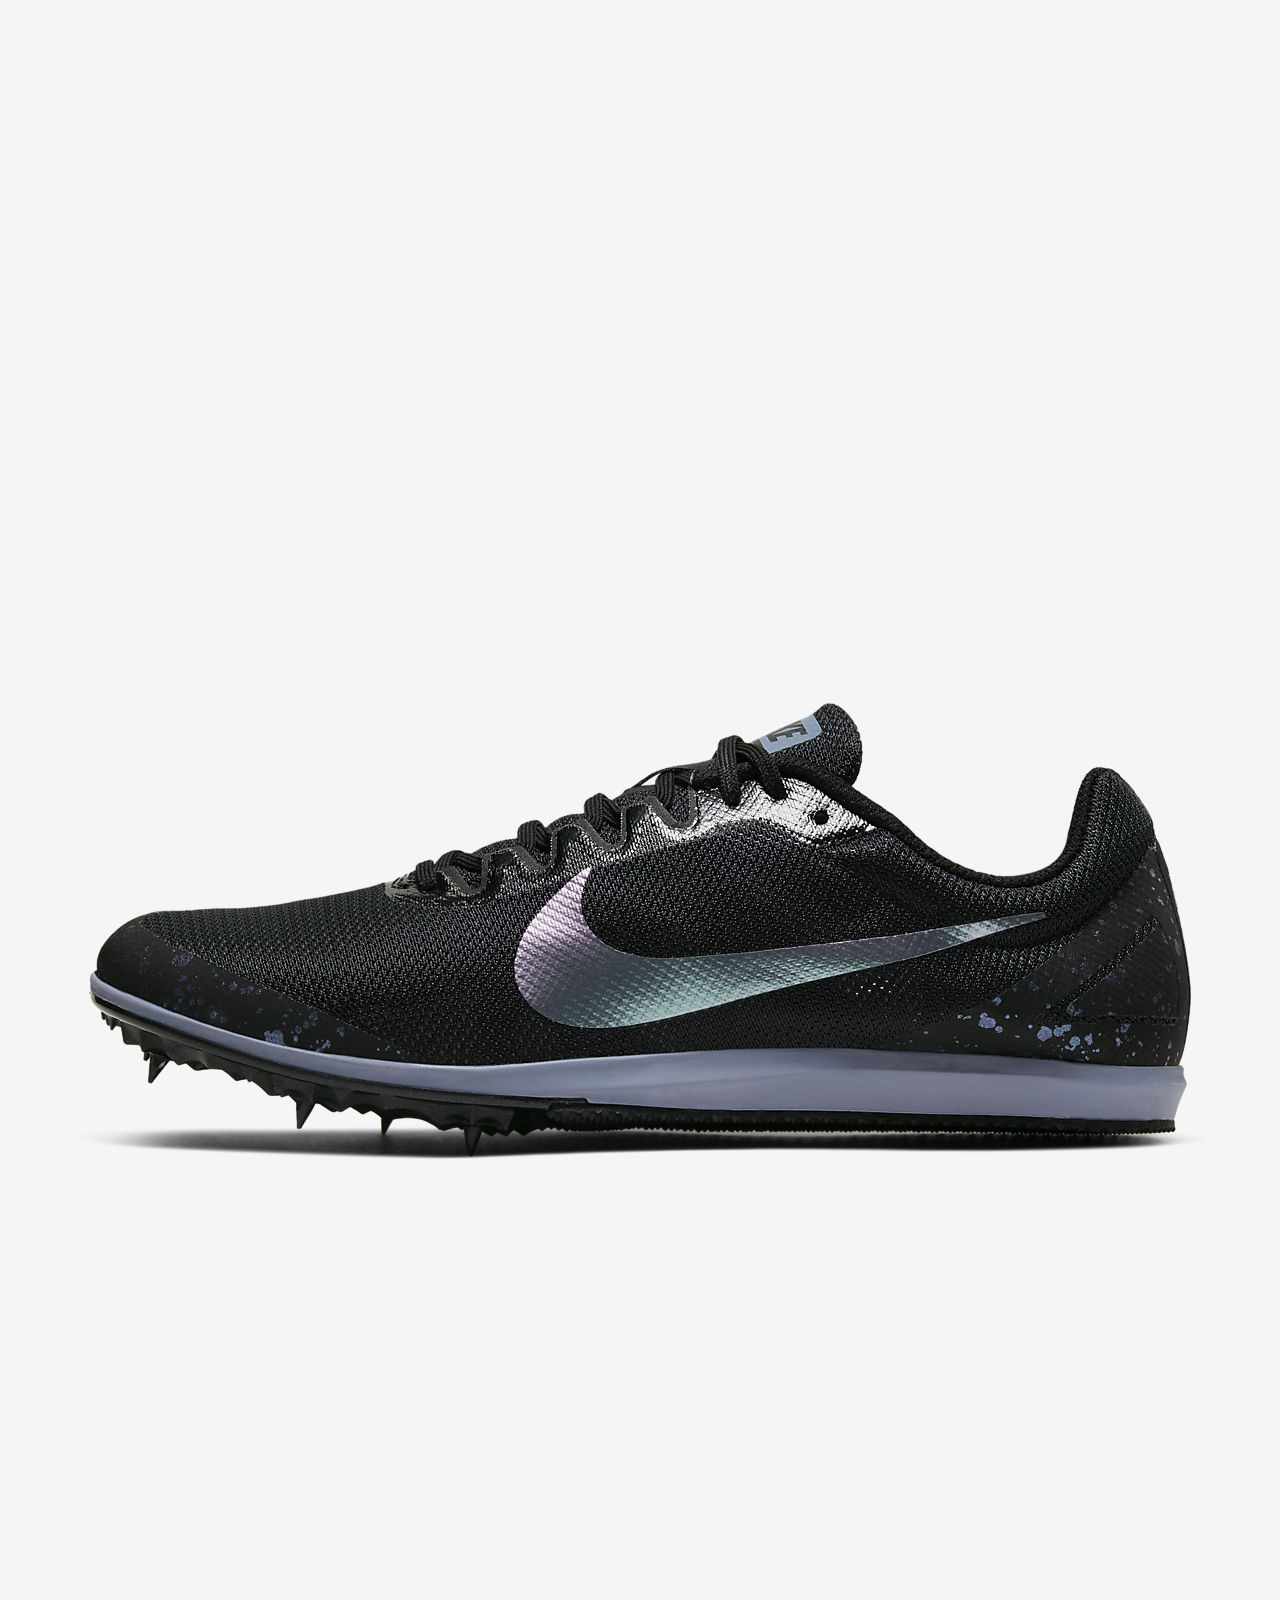 Nike Zoom Rival D 10 Unisex Track Spike